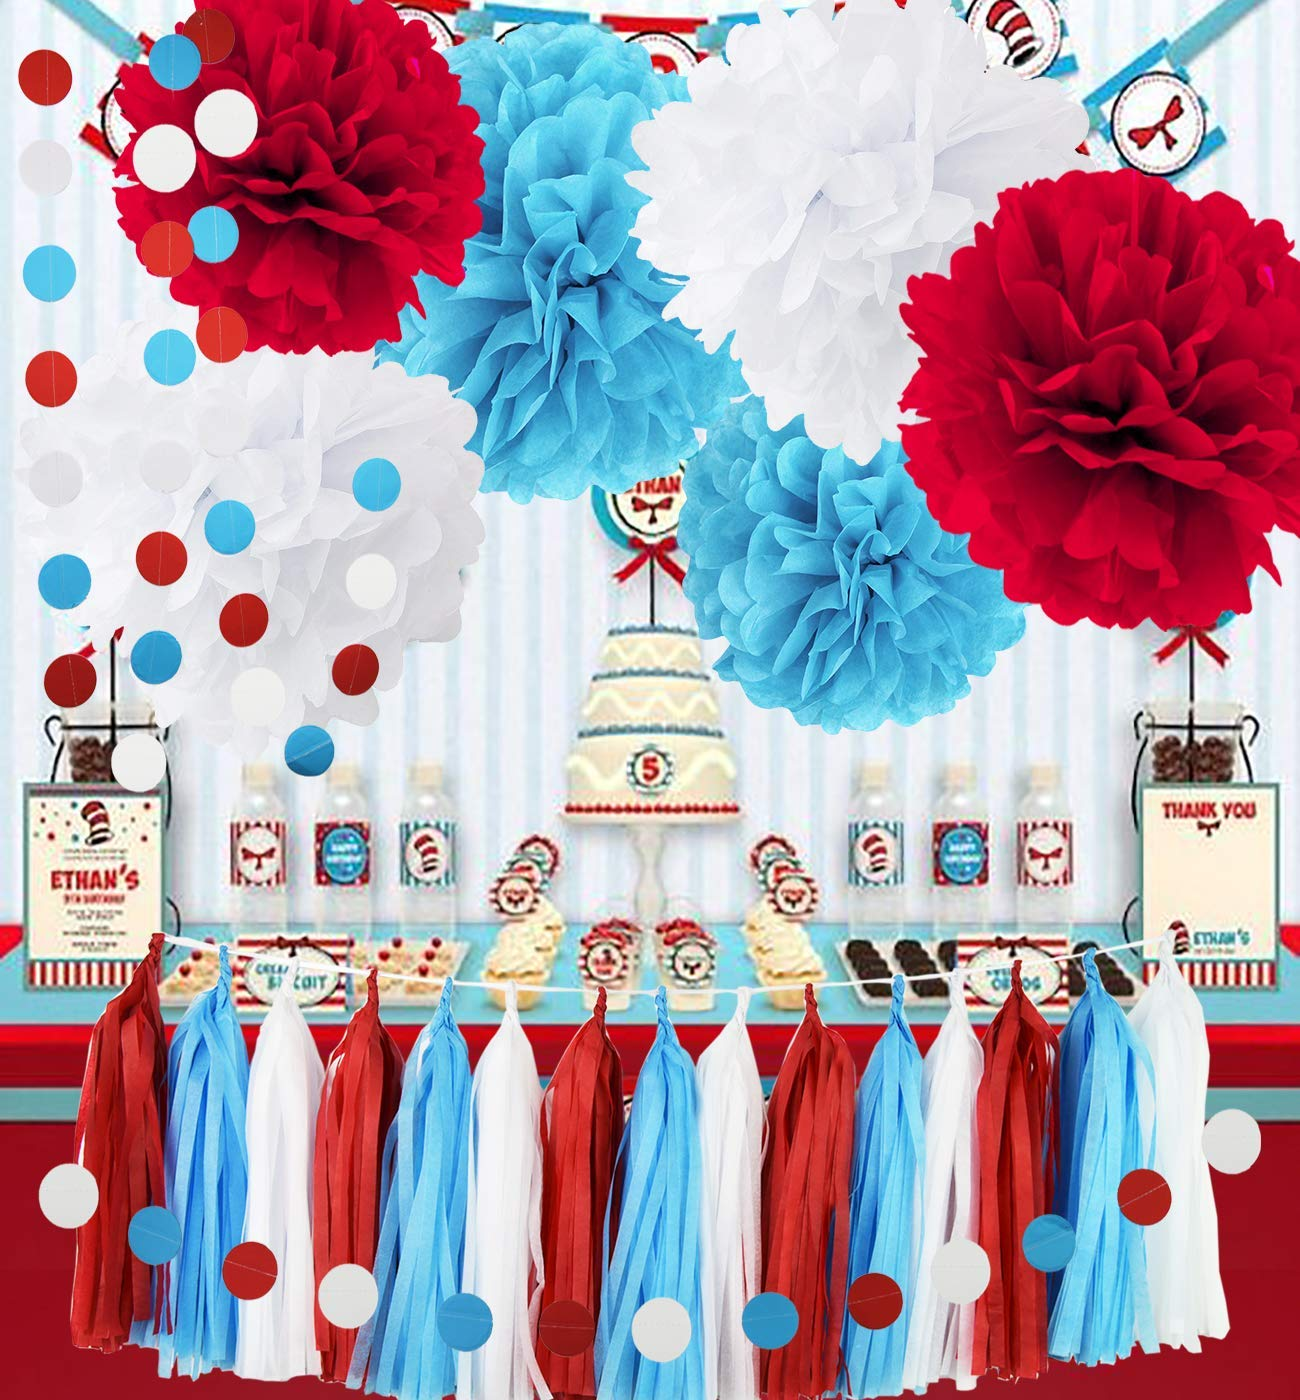 Get Quotations Bridal Shower Decorations Turquoise White Red Tissue Pom With Circle Paper Garland For Baby